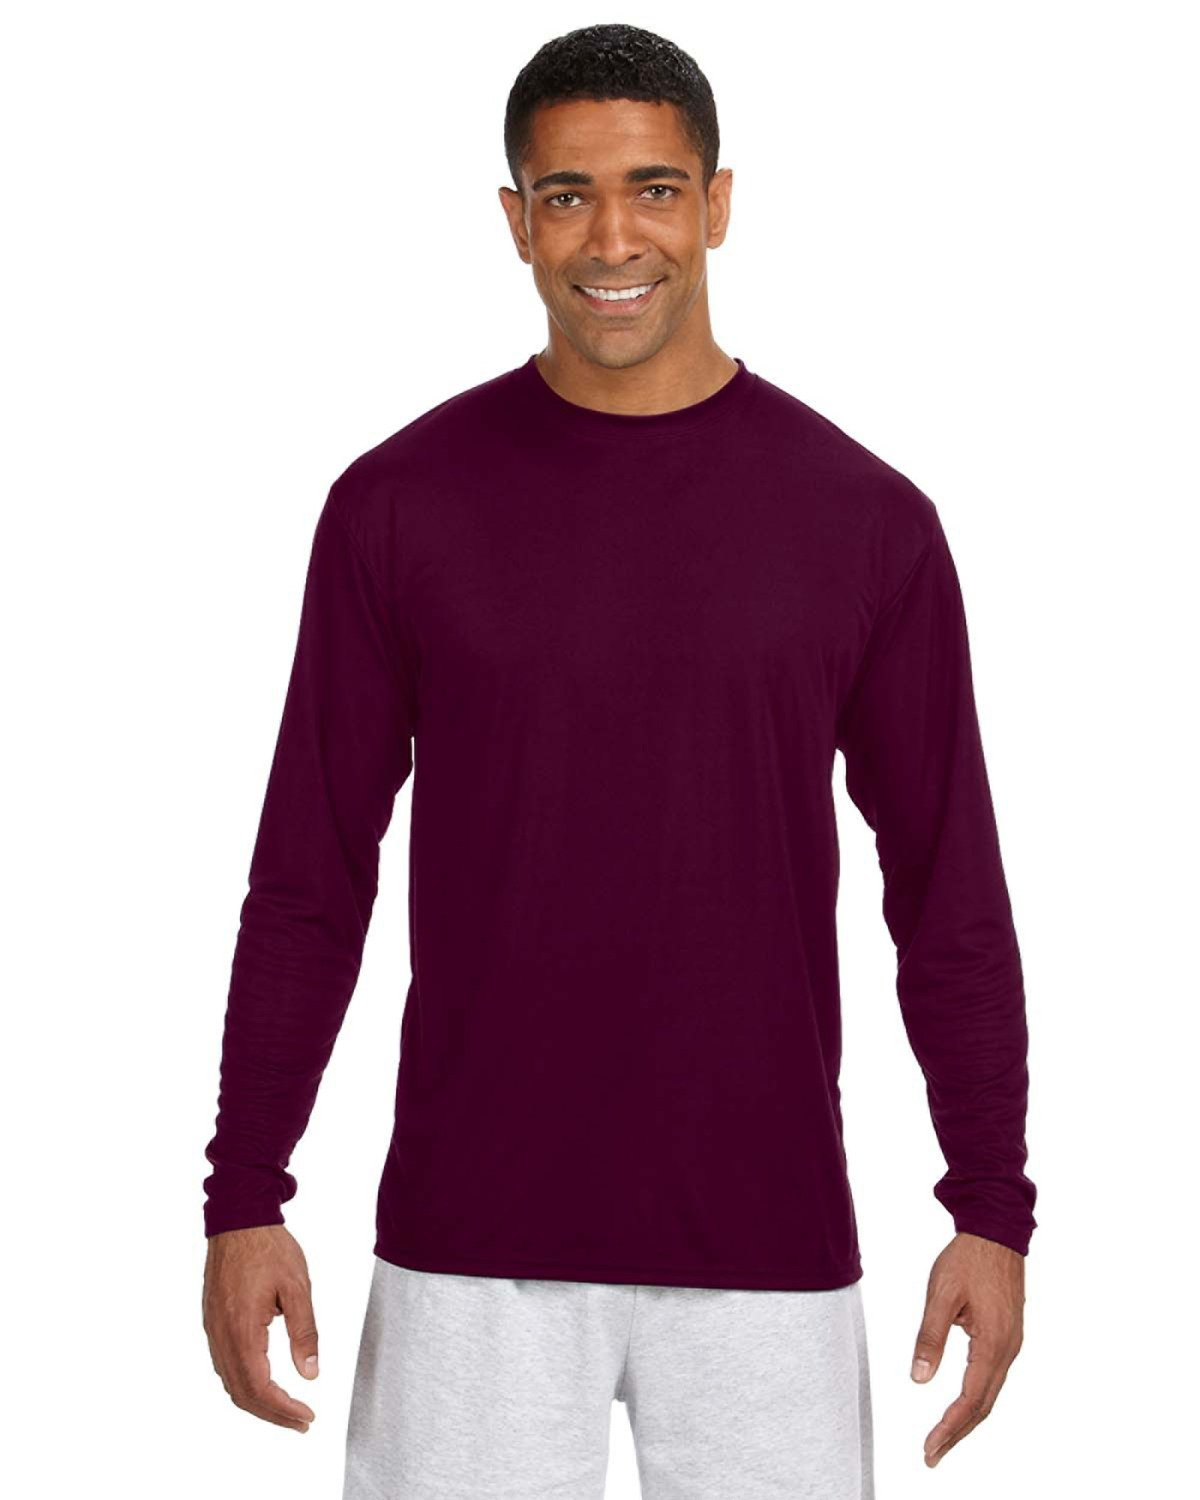 A4 Men's Cooling Performance Long Sleeve T-Shirt MAROON